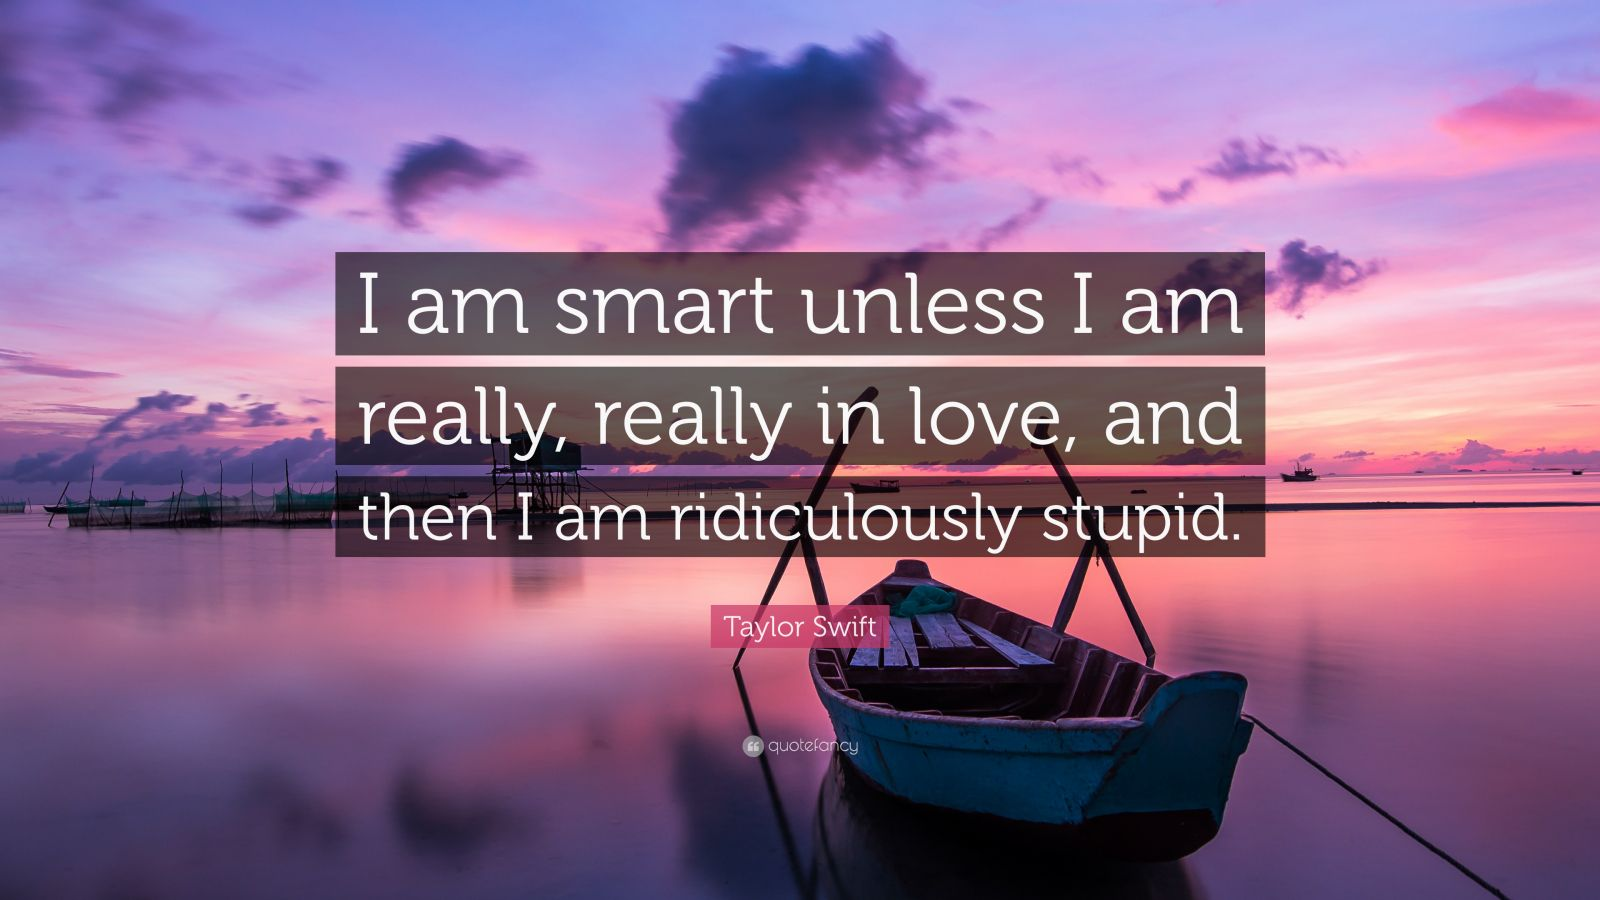 Kurt Cobain Quotes Wallpaper Taylor Swift Quote I Am Smart Unless I Am Really Really